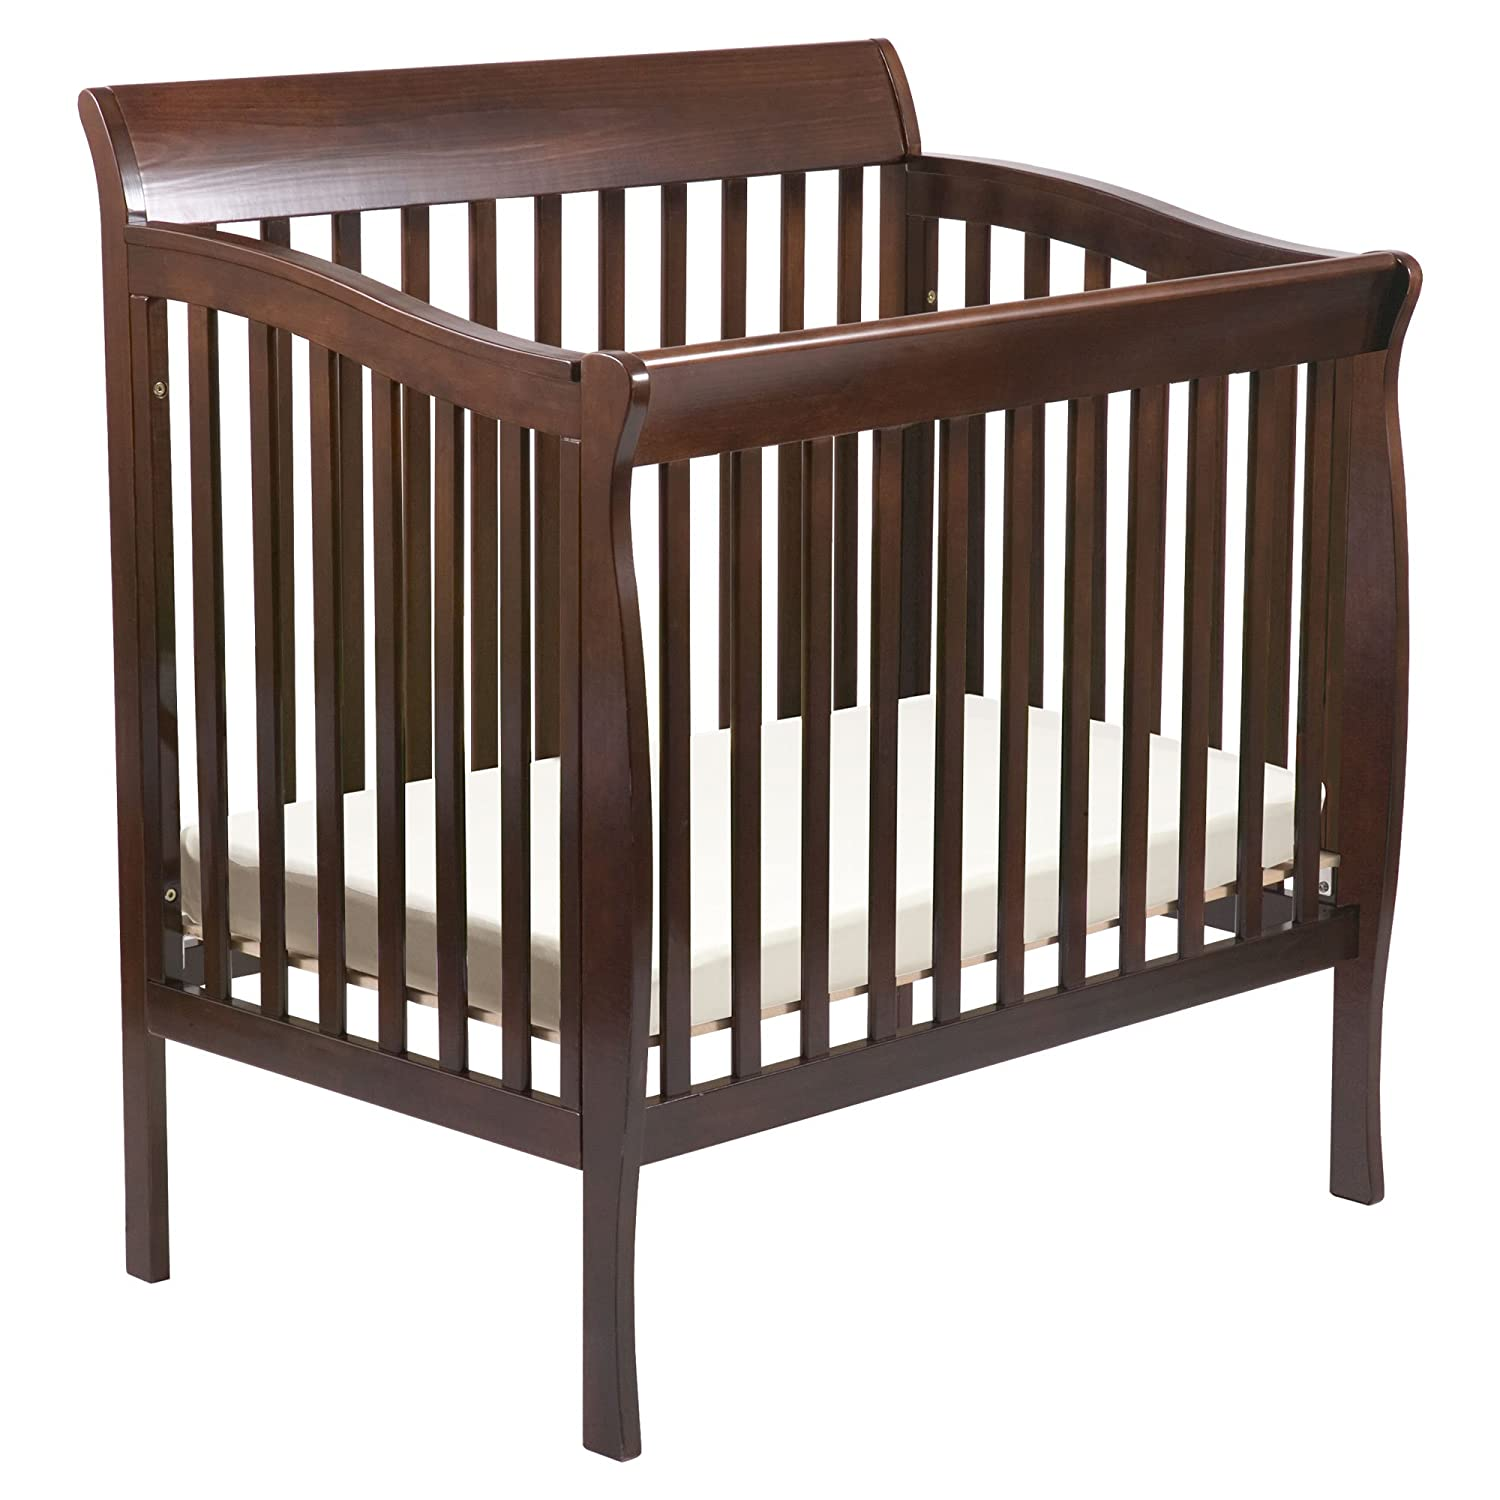 living pregnancy cribs mini spaces baby crib for tiny picmonkey small